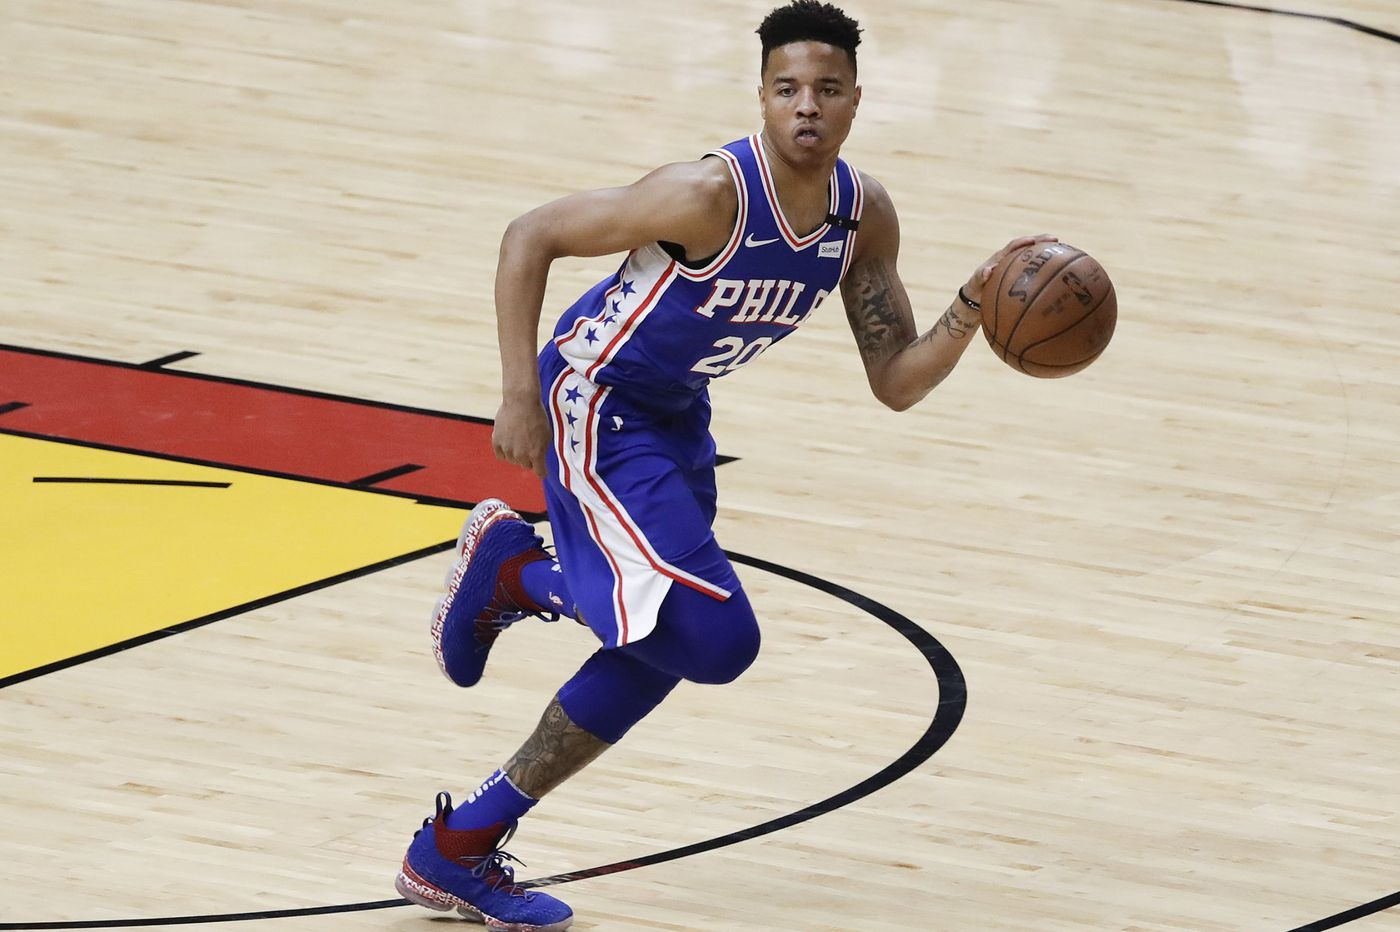 Markelle Fultz will be defined by his jump shot, like it or not